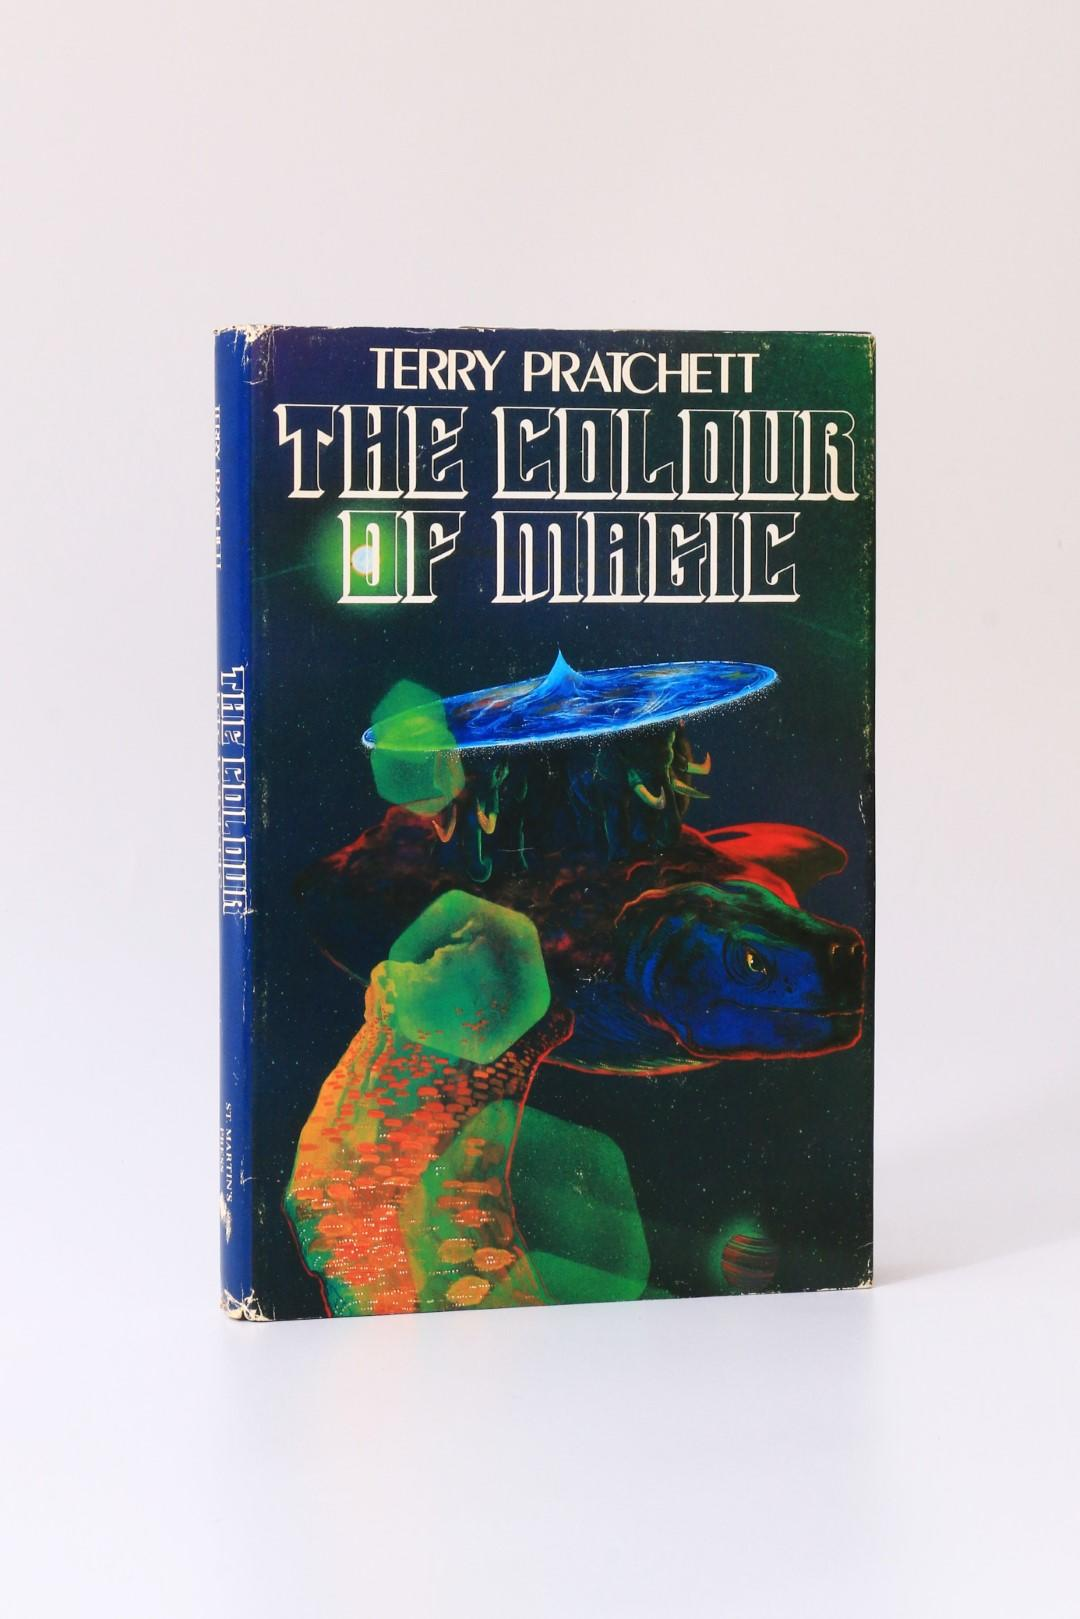 Terry Pratchett - The Colour of Magic - St Martin's Press, 1983, Signed First Edition.